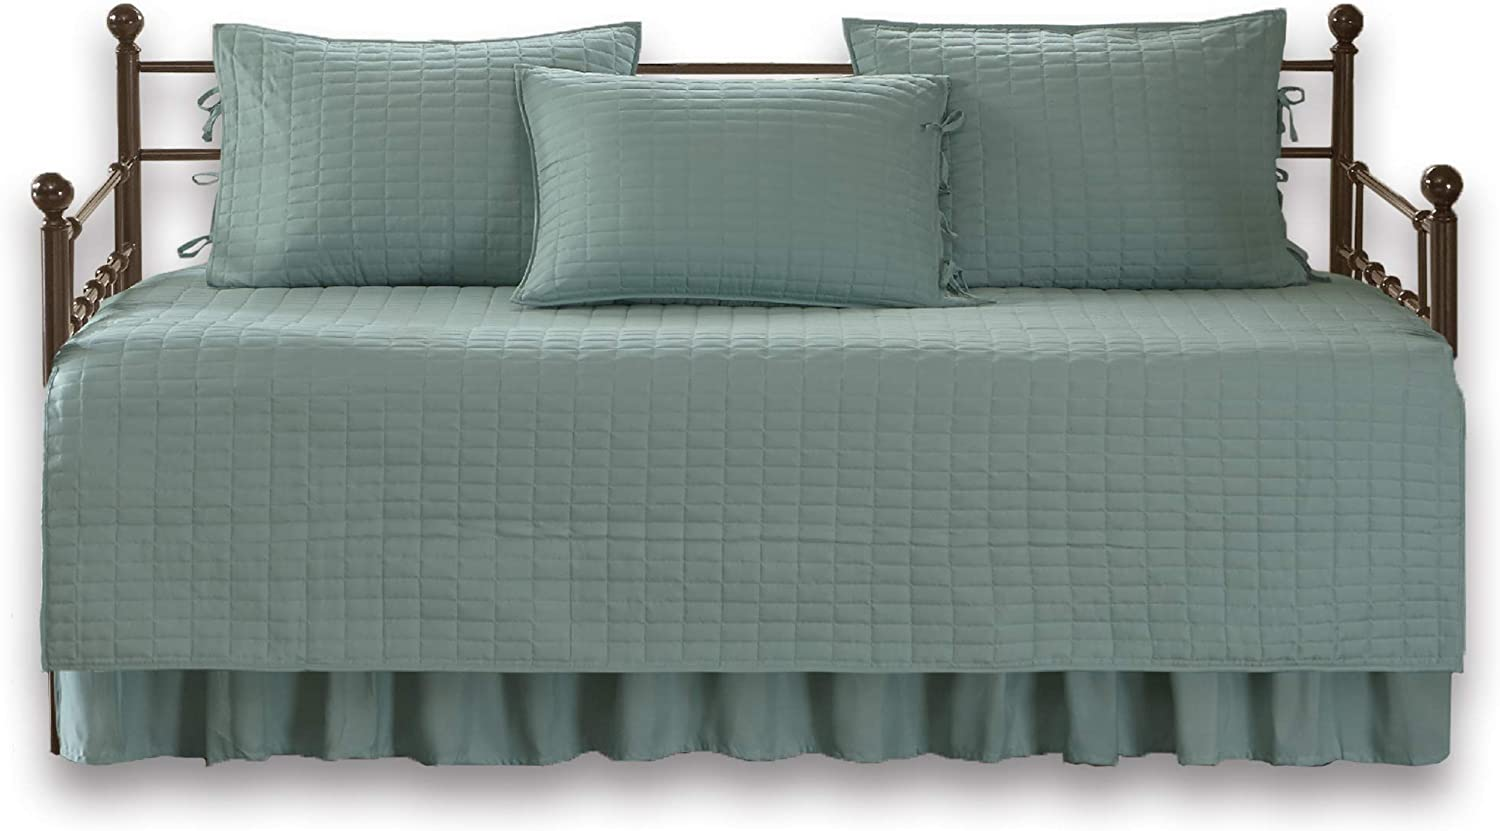 "Comfort Spaces Kienna Soft Microfiber Solid Blush Stitched Pattern 5 Piece Quilt Daybed Bedding Sets, 75""x39"", Seafoam"